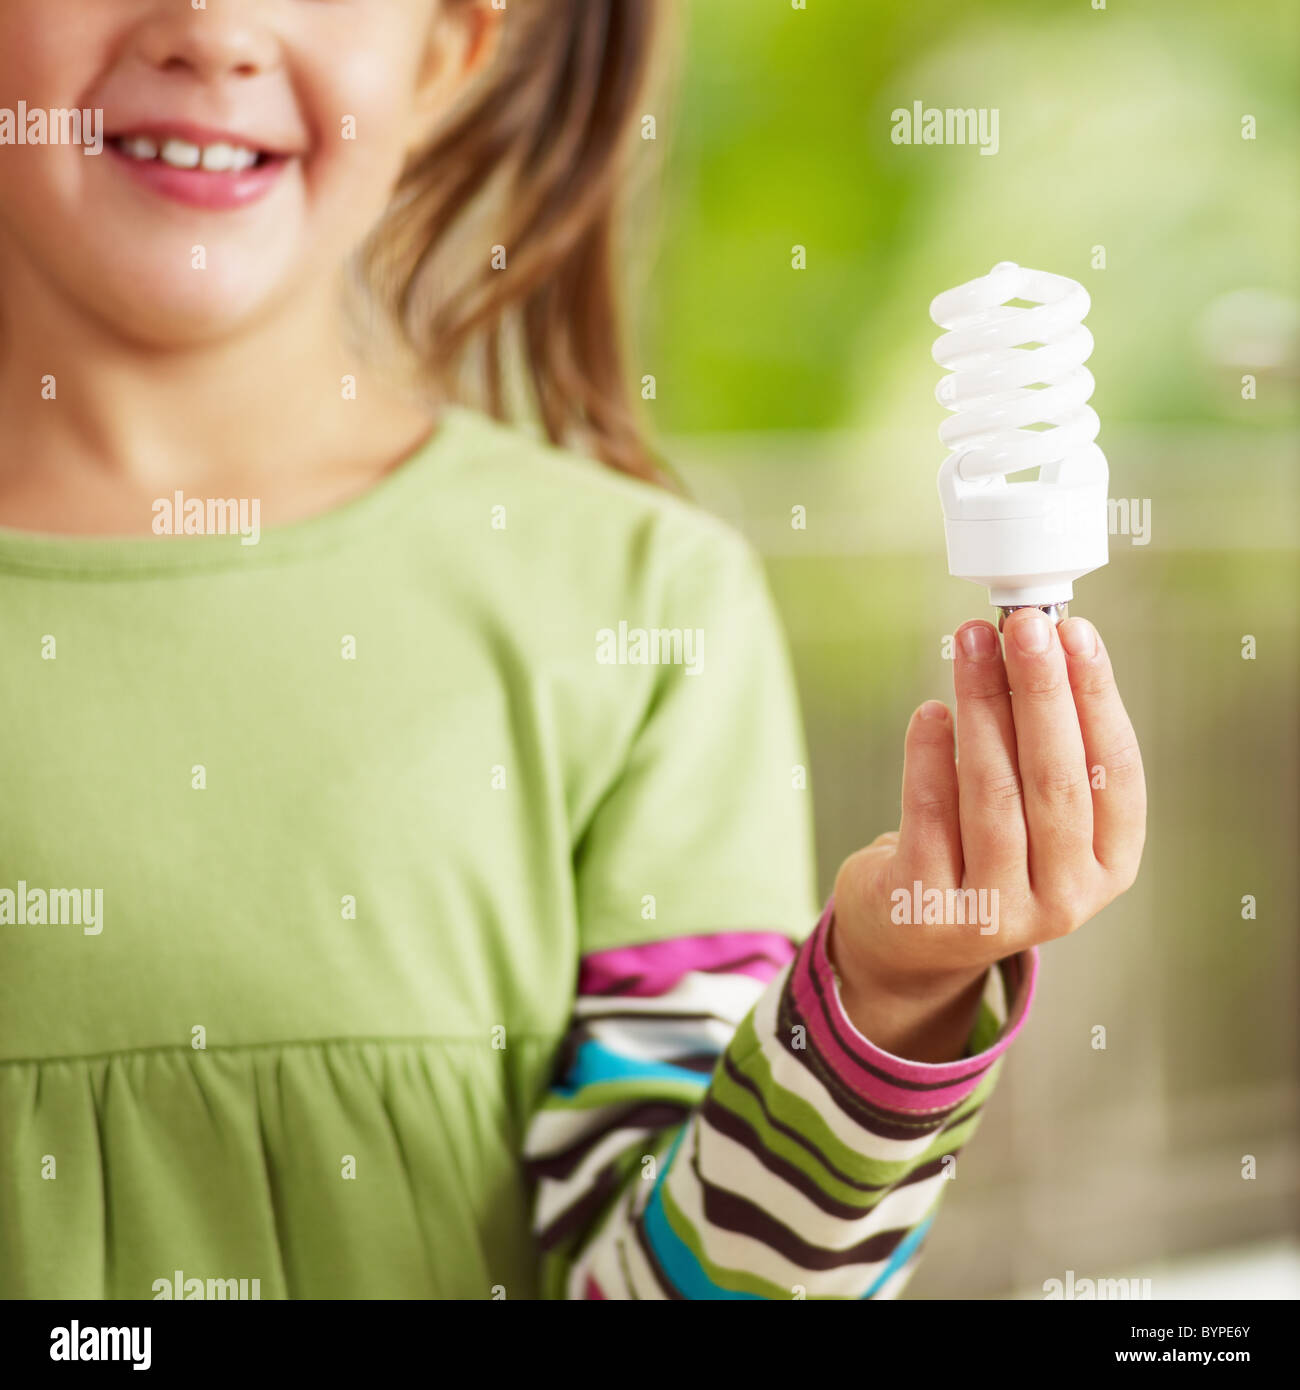 Girl holding light bulb and smiling. Selective focus - Stock Image